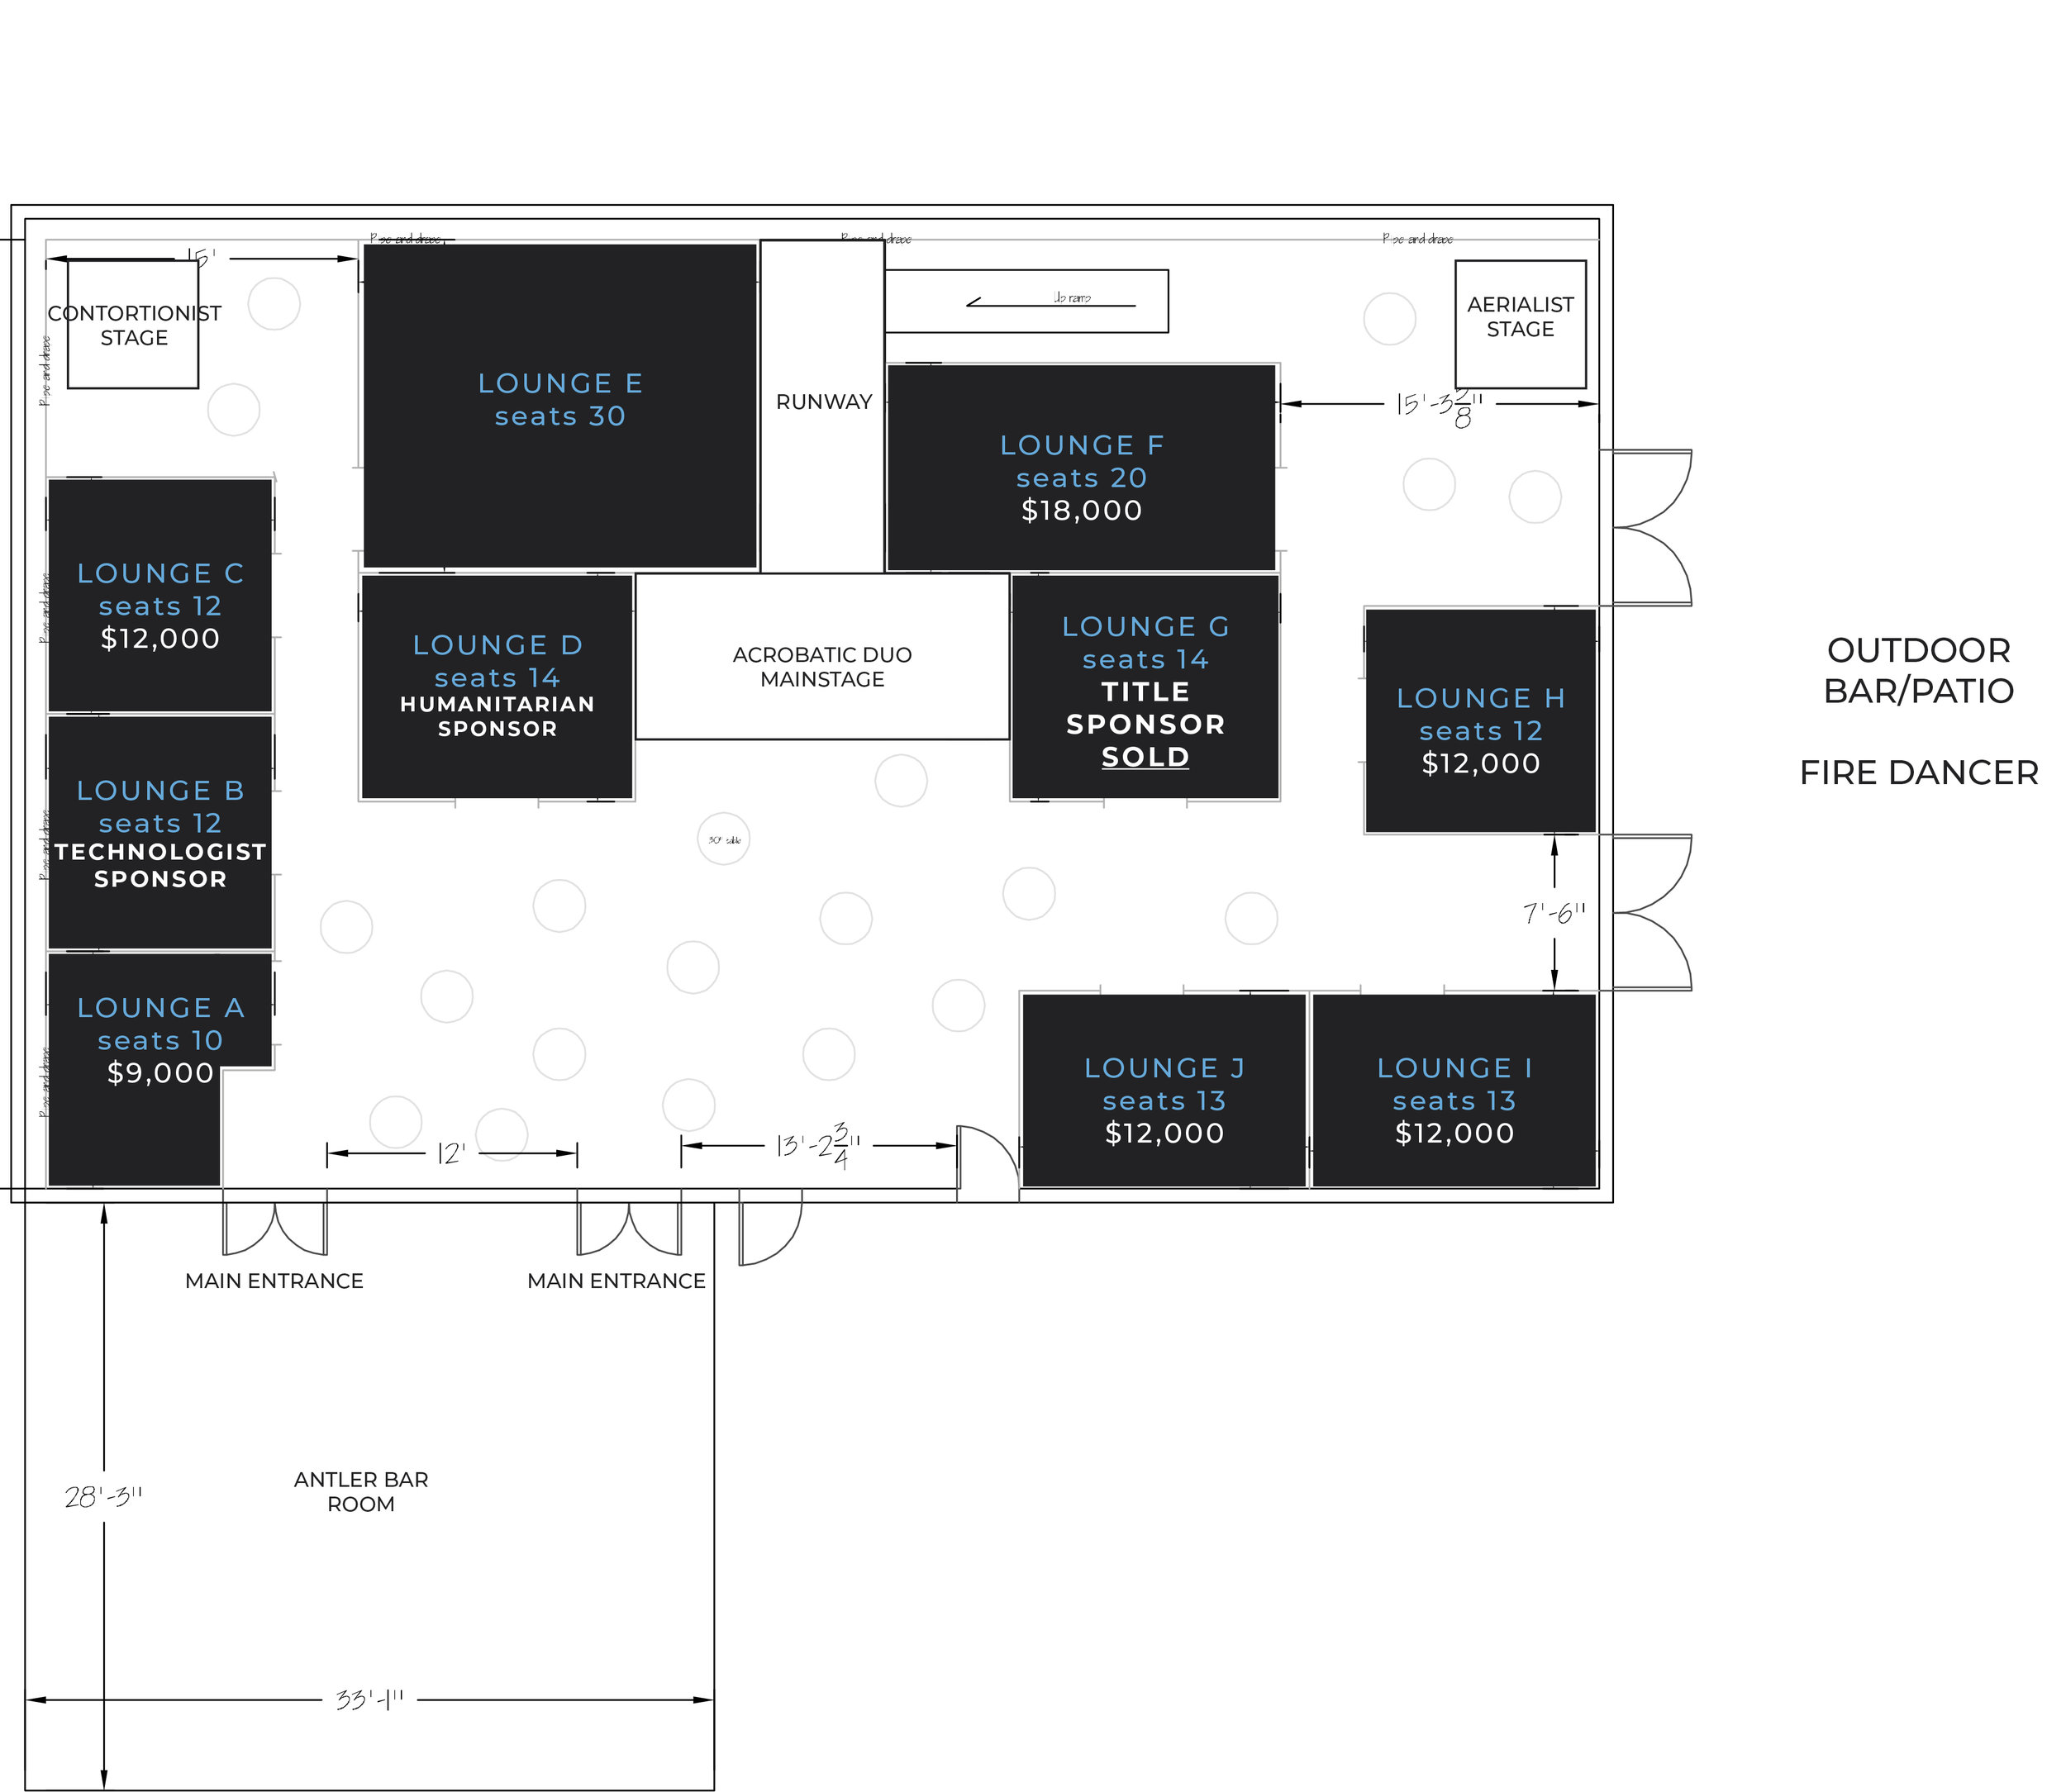 ballroom layout for website-pricing.jpg